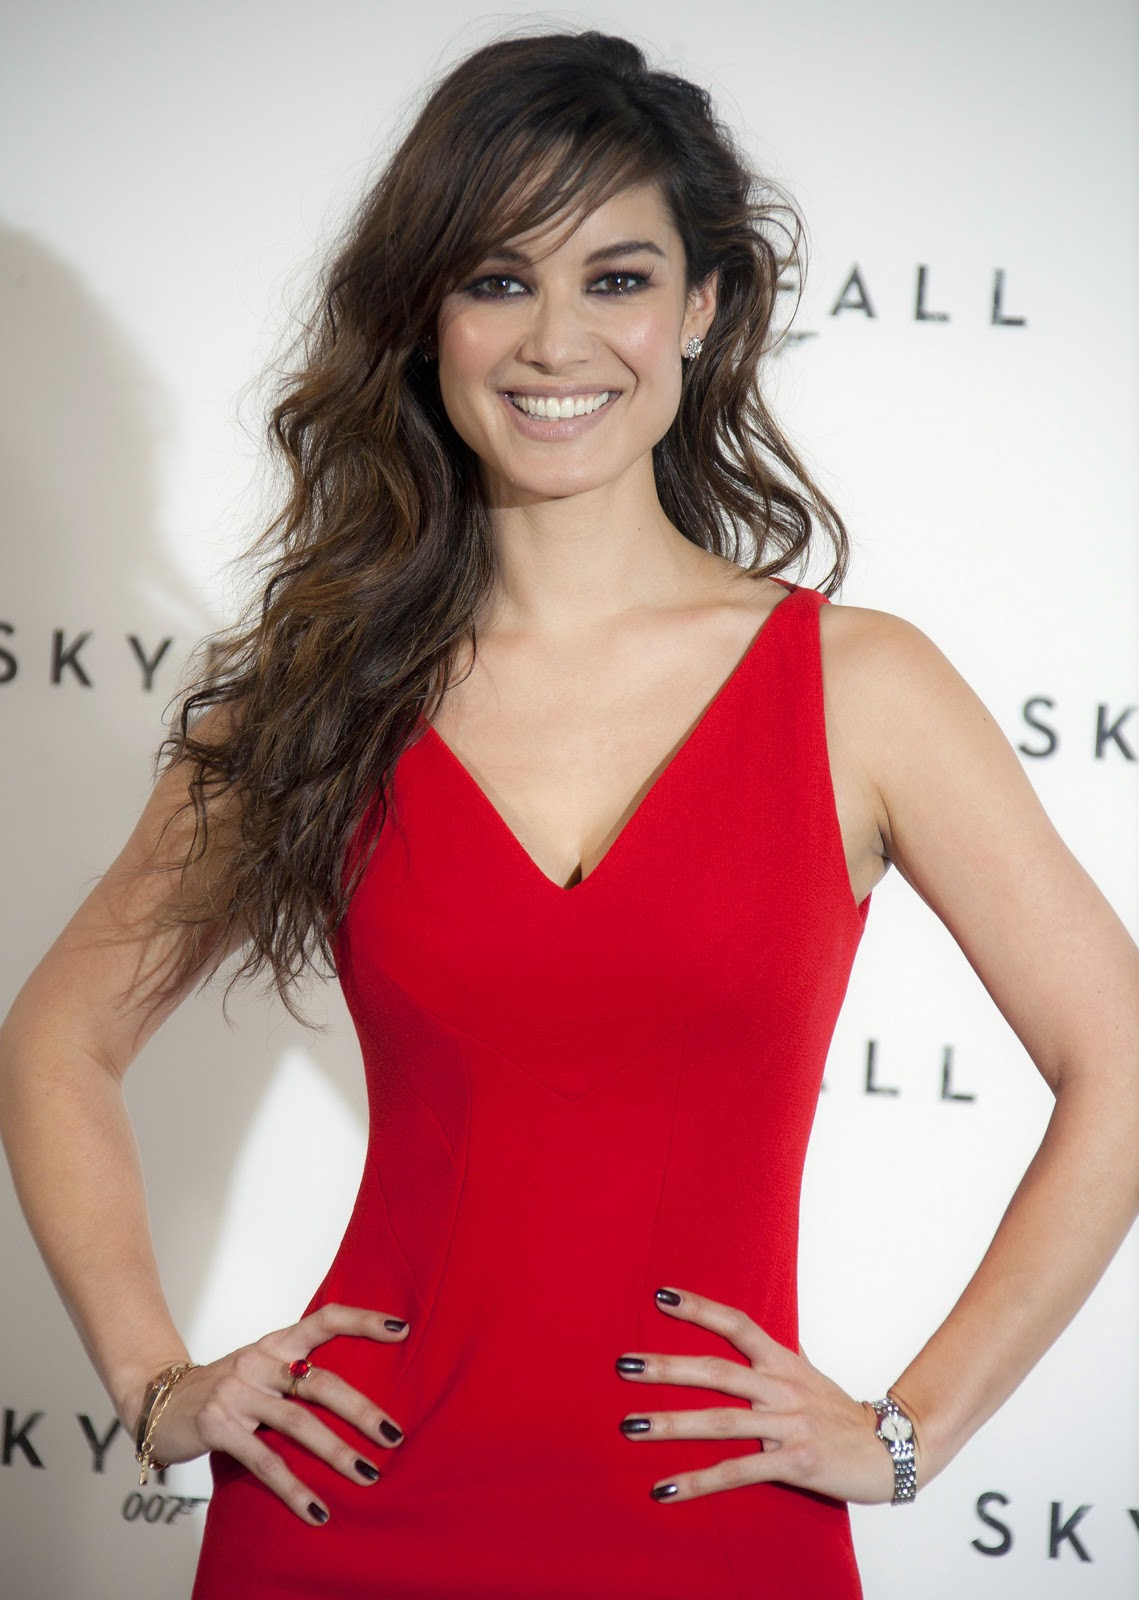 Q James Bond >> Berenice Marlohe pictures gallery (2) | Film Actresses